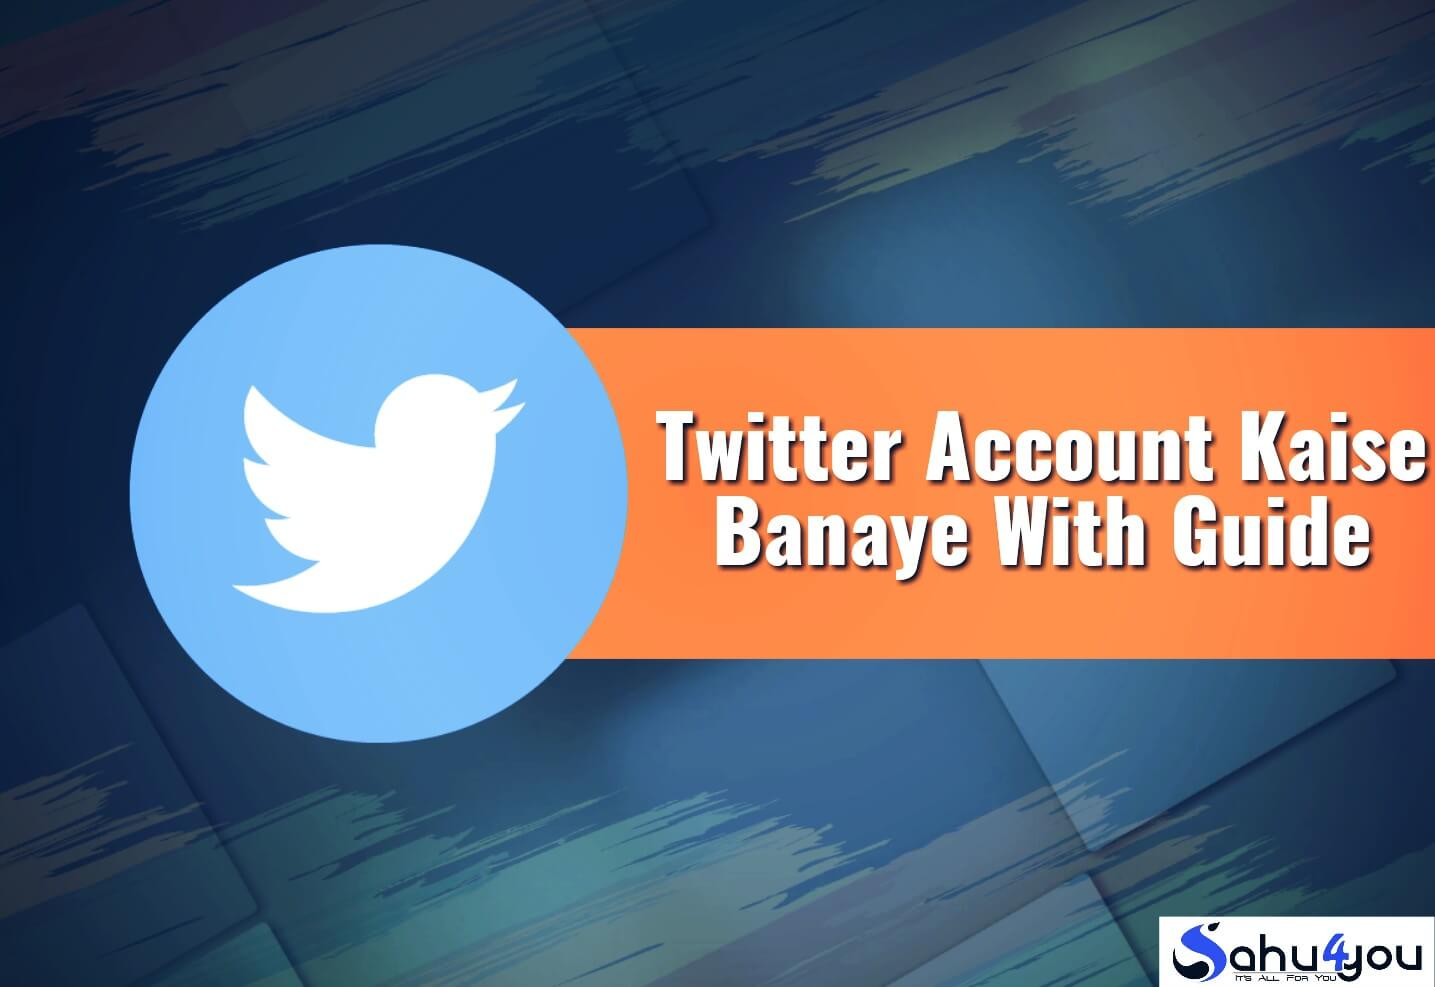 Twitter Par Account Kaise Banaye, Twitter Ki ID Banana Hai Twitter Account Kaise Create Kare, Twitter Tag Use Kaise Kare, How to Create Twitter Account In Hindi